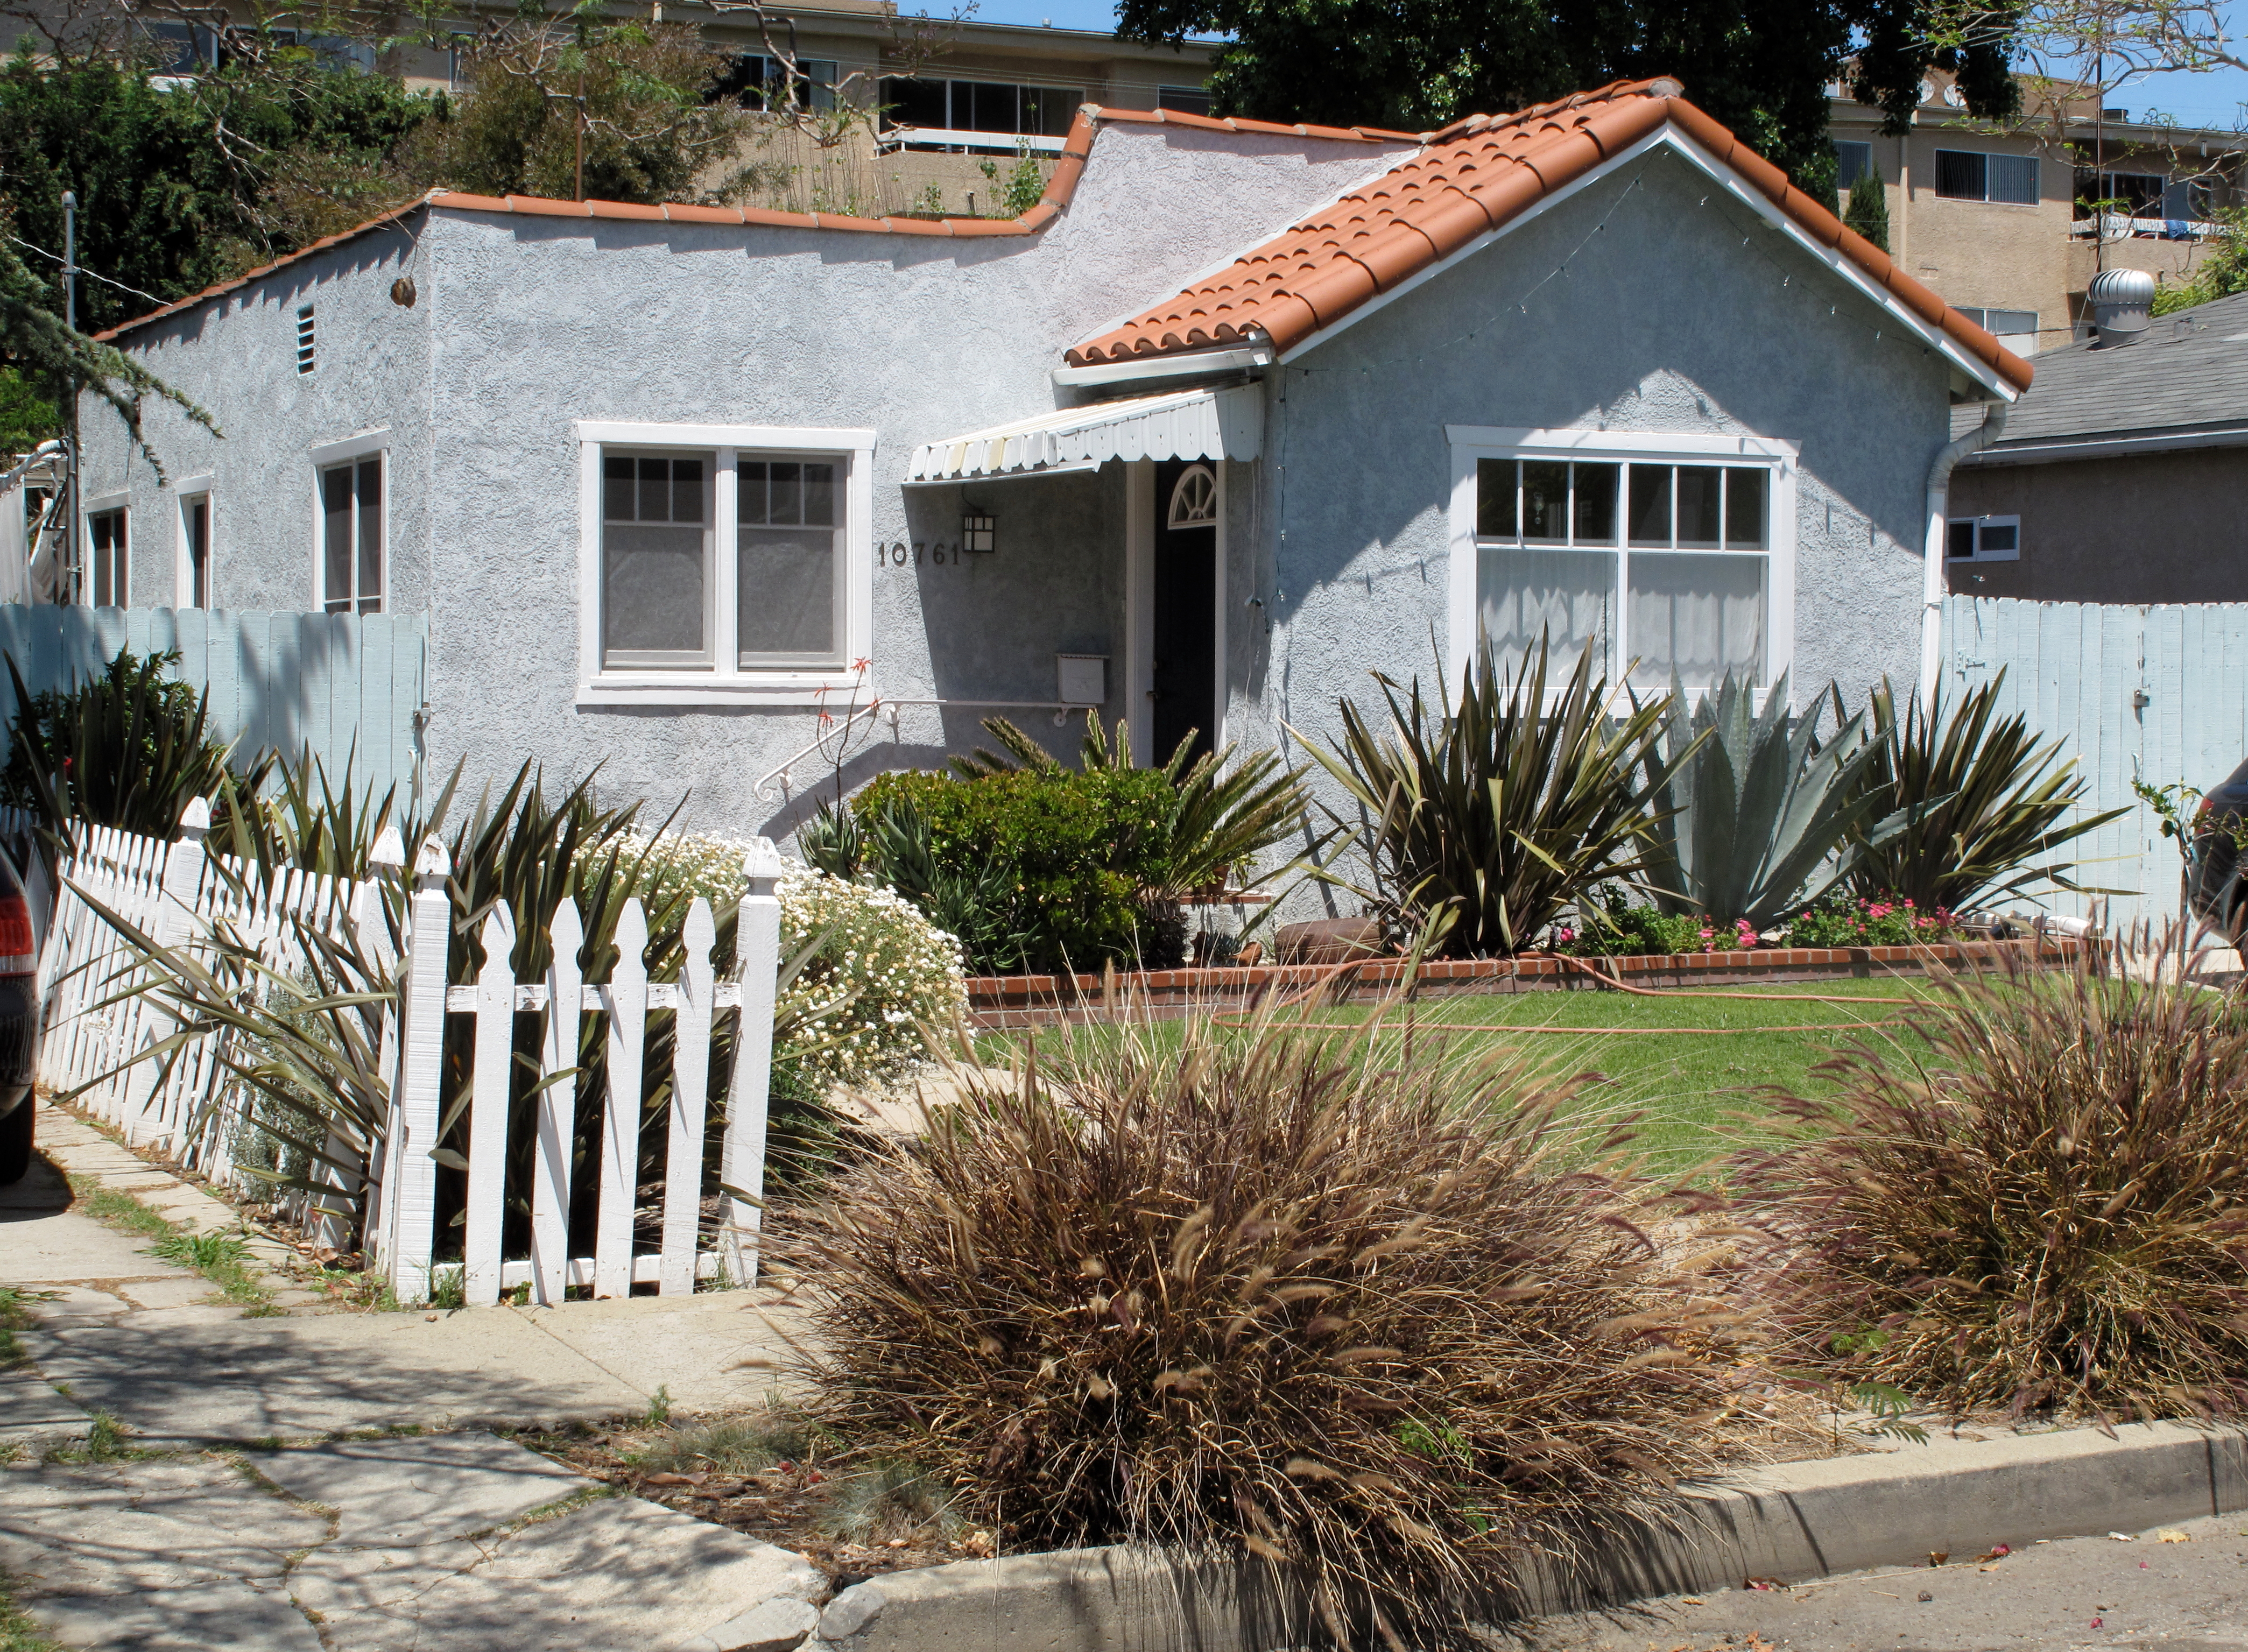 The exterior of a blue stucco house with a red tiled roof enclosed behind a white picket fence.